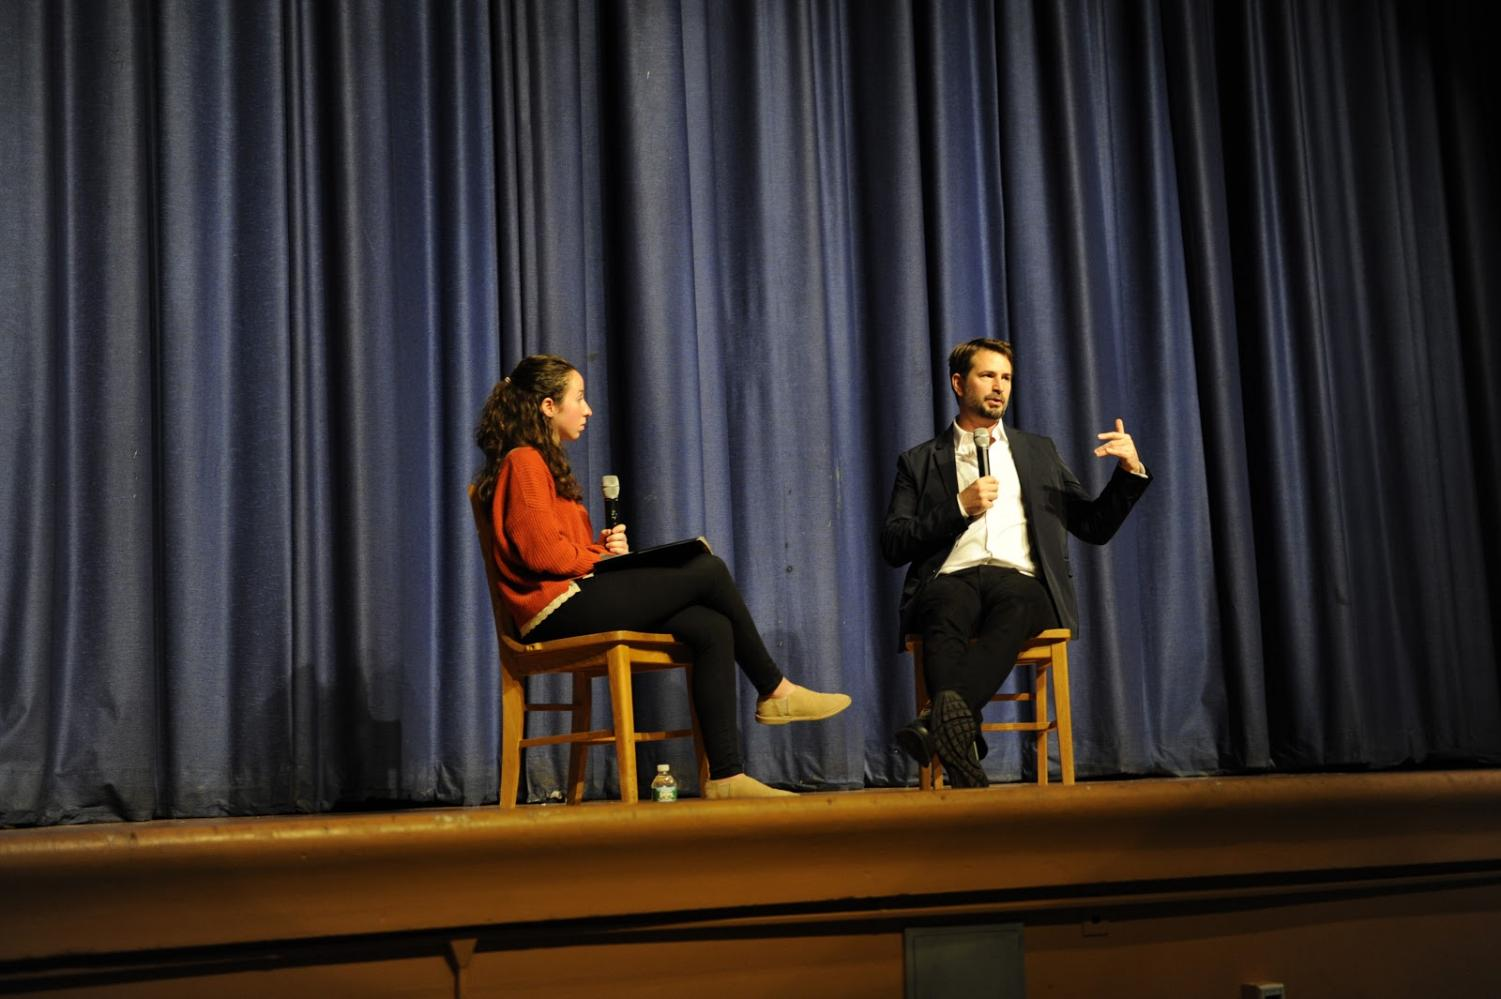 Anastasia Koutavas '18 interviews Mr. Boal in front  of the student body in the auditorium.